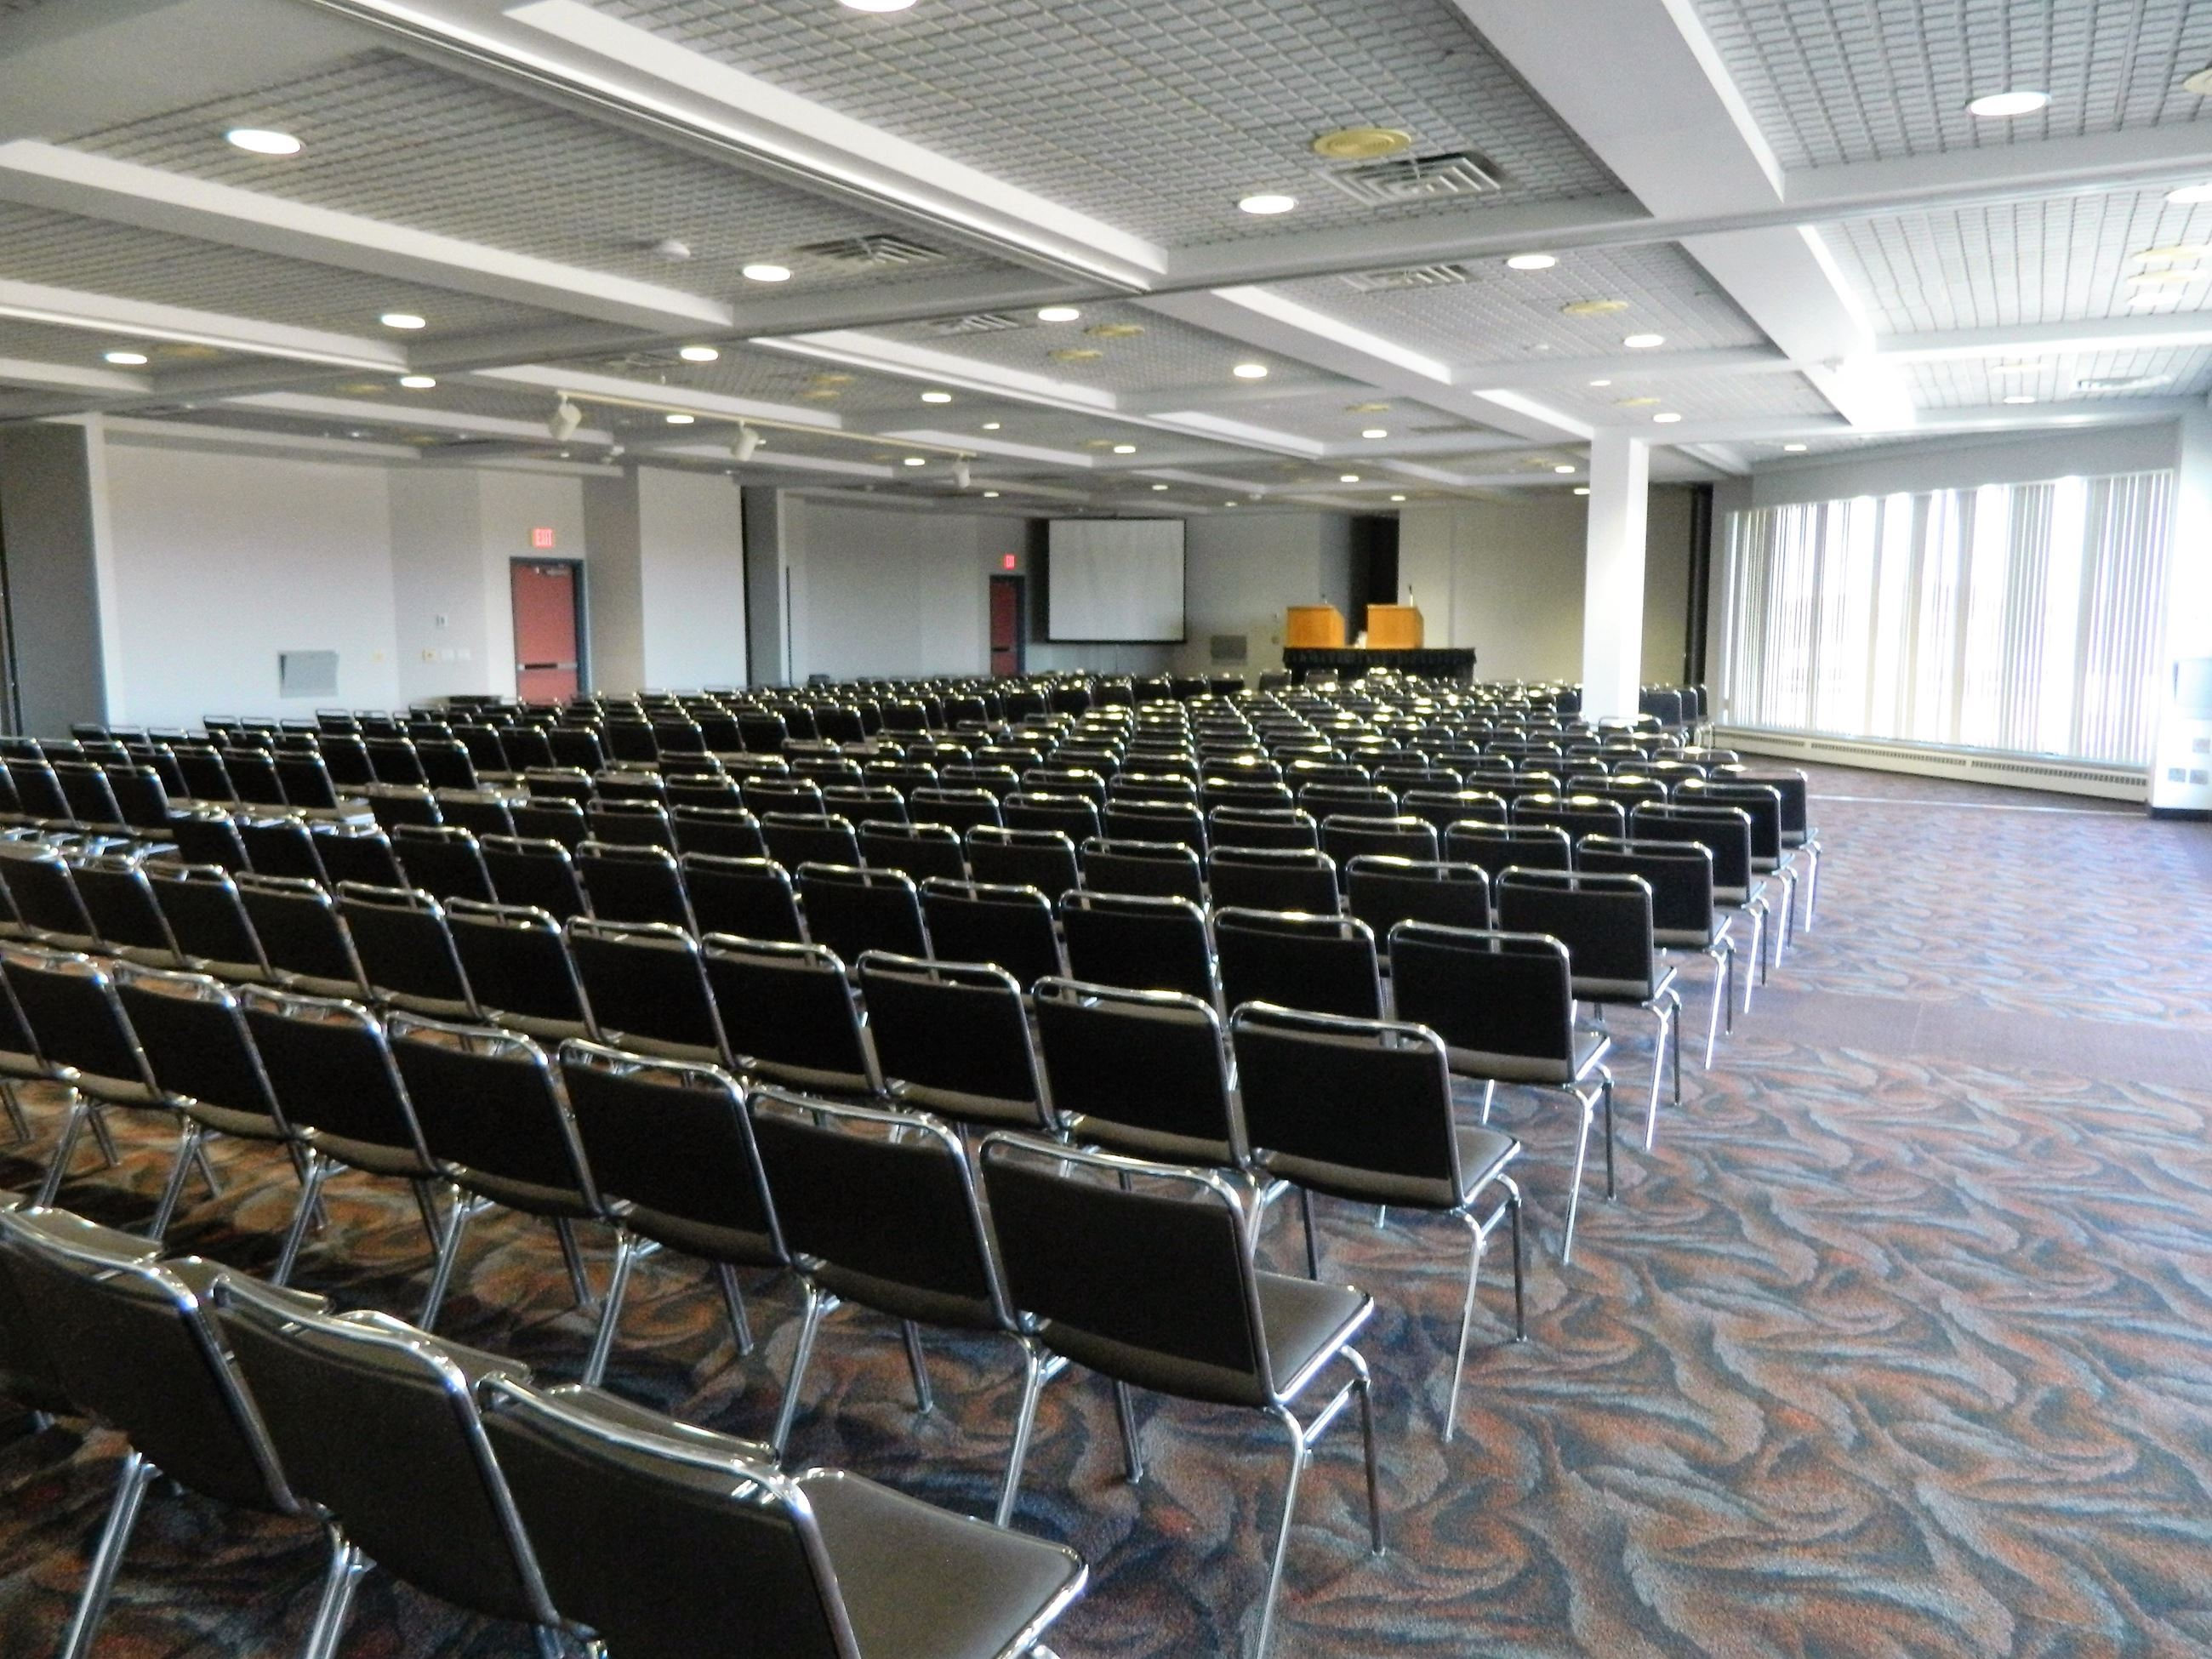 Room set up with chairs facing a projector screen and podium, accommodating 370 people